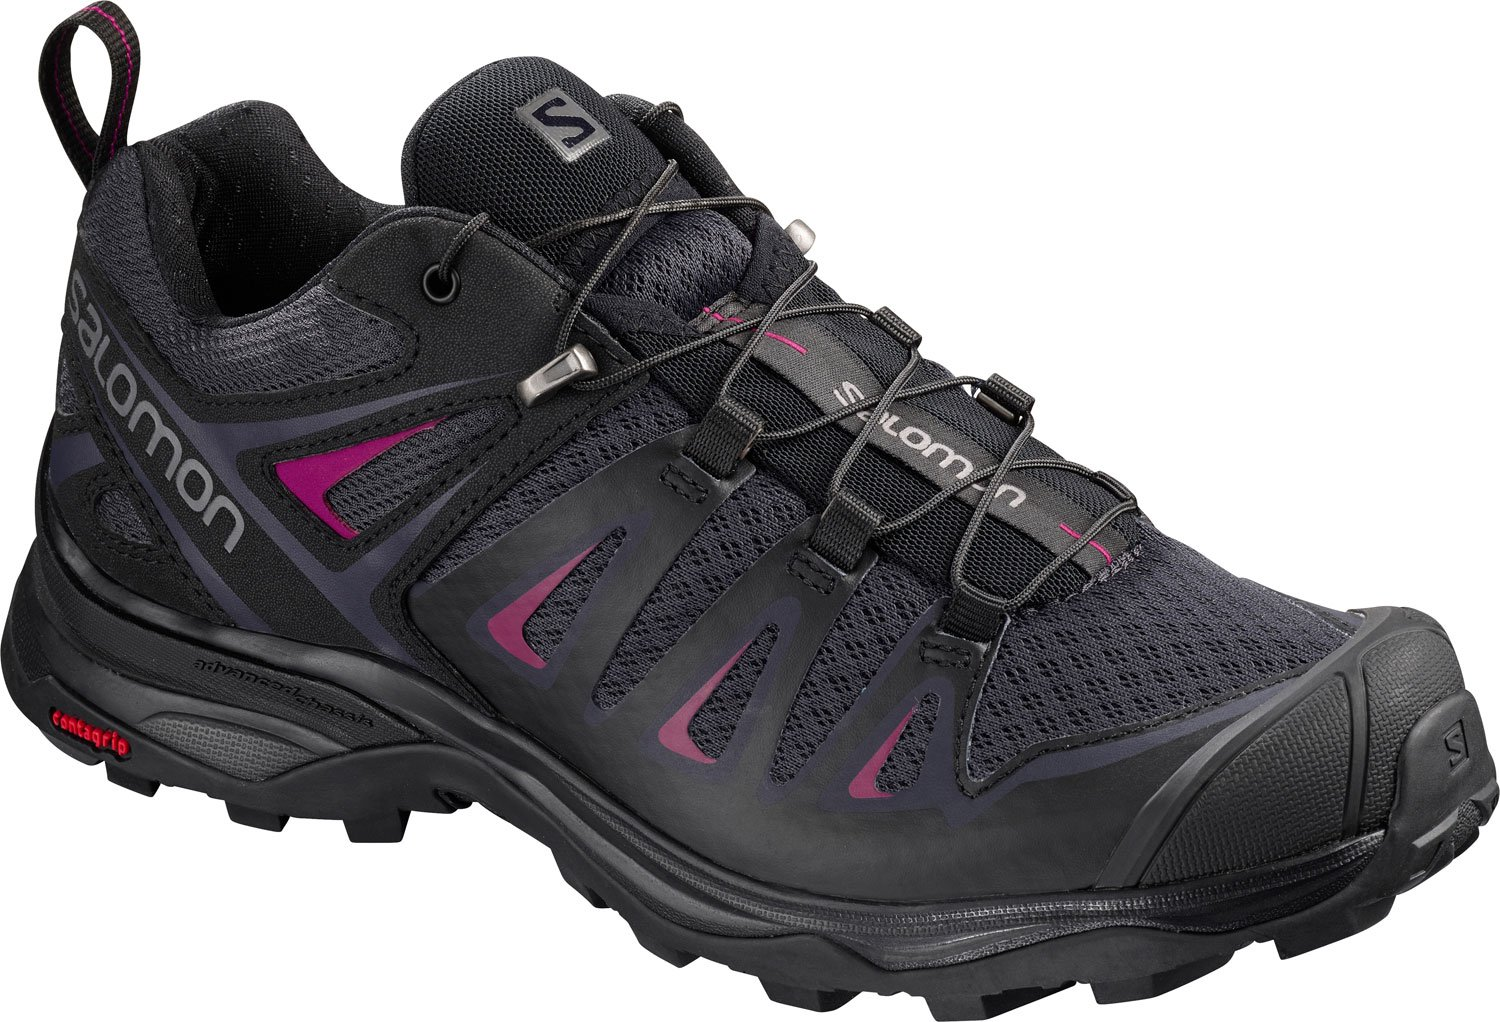 81pFubo63LL - SALOMON X Ultra 3 Women's Walking Shoes - AW18